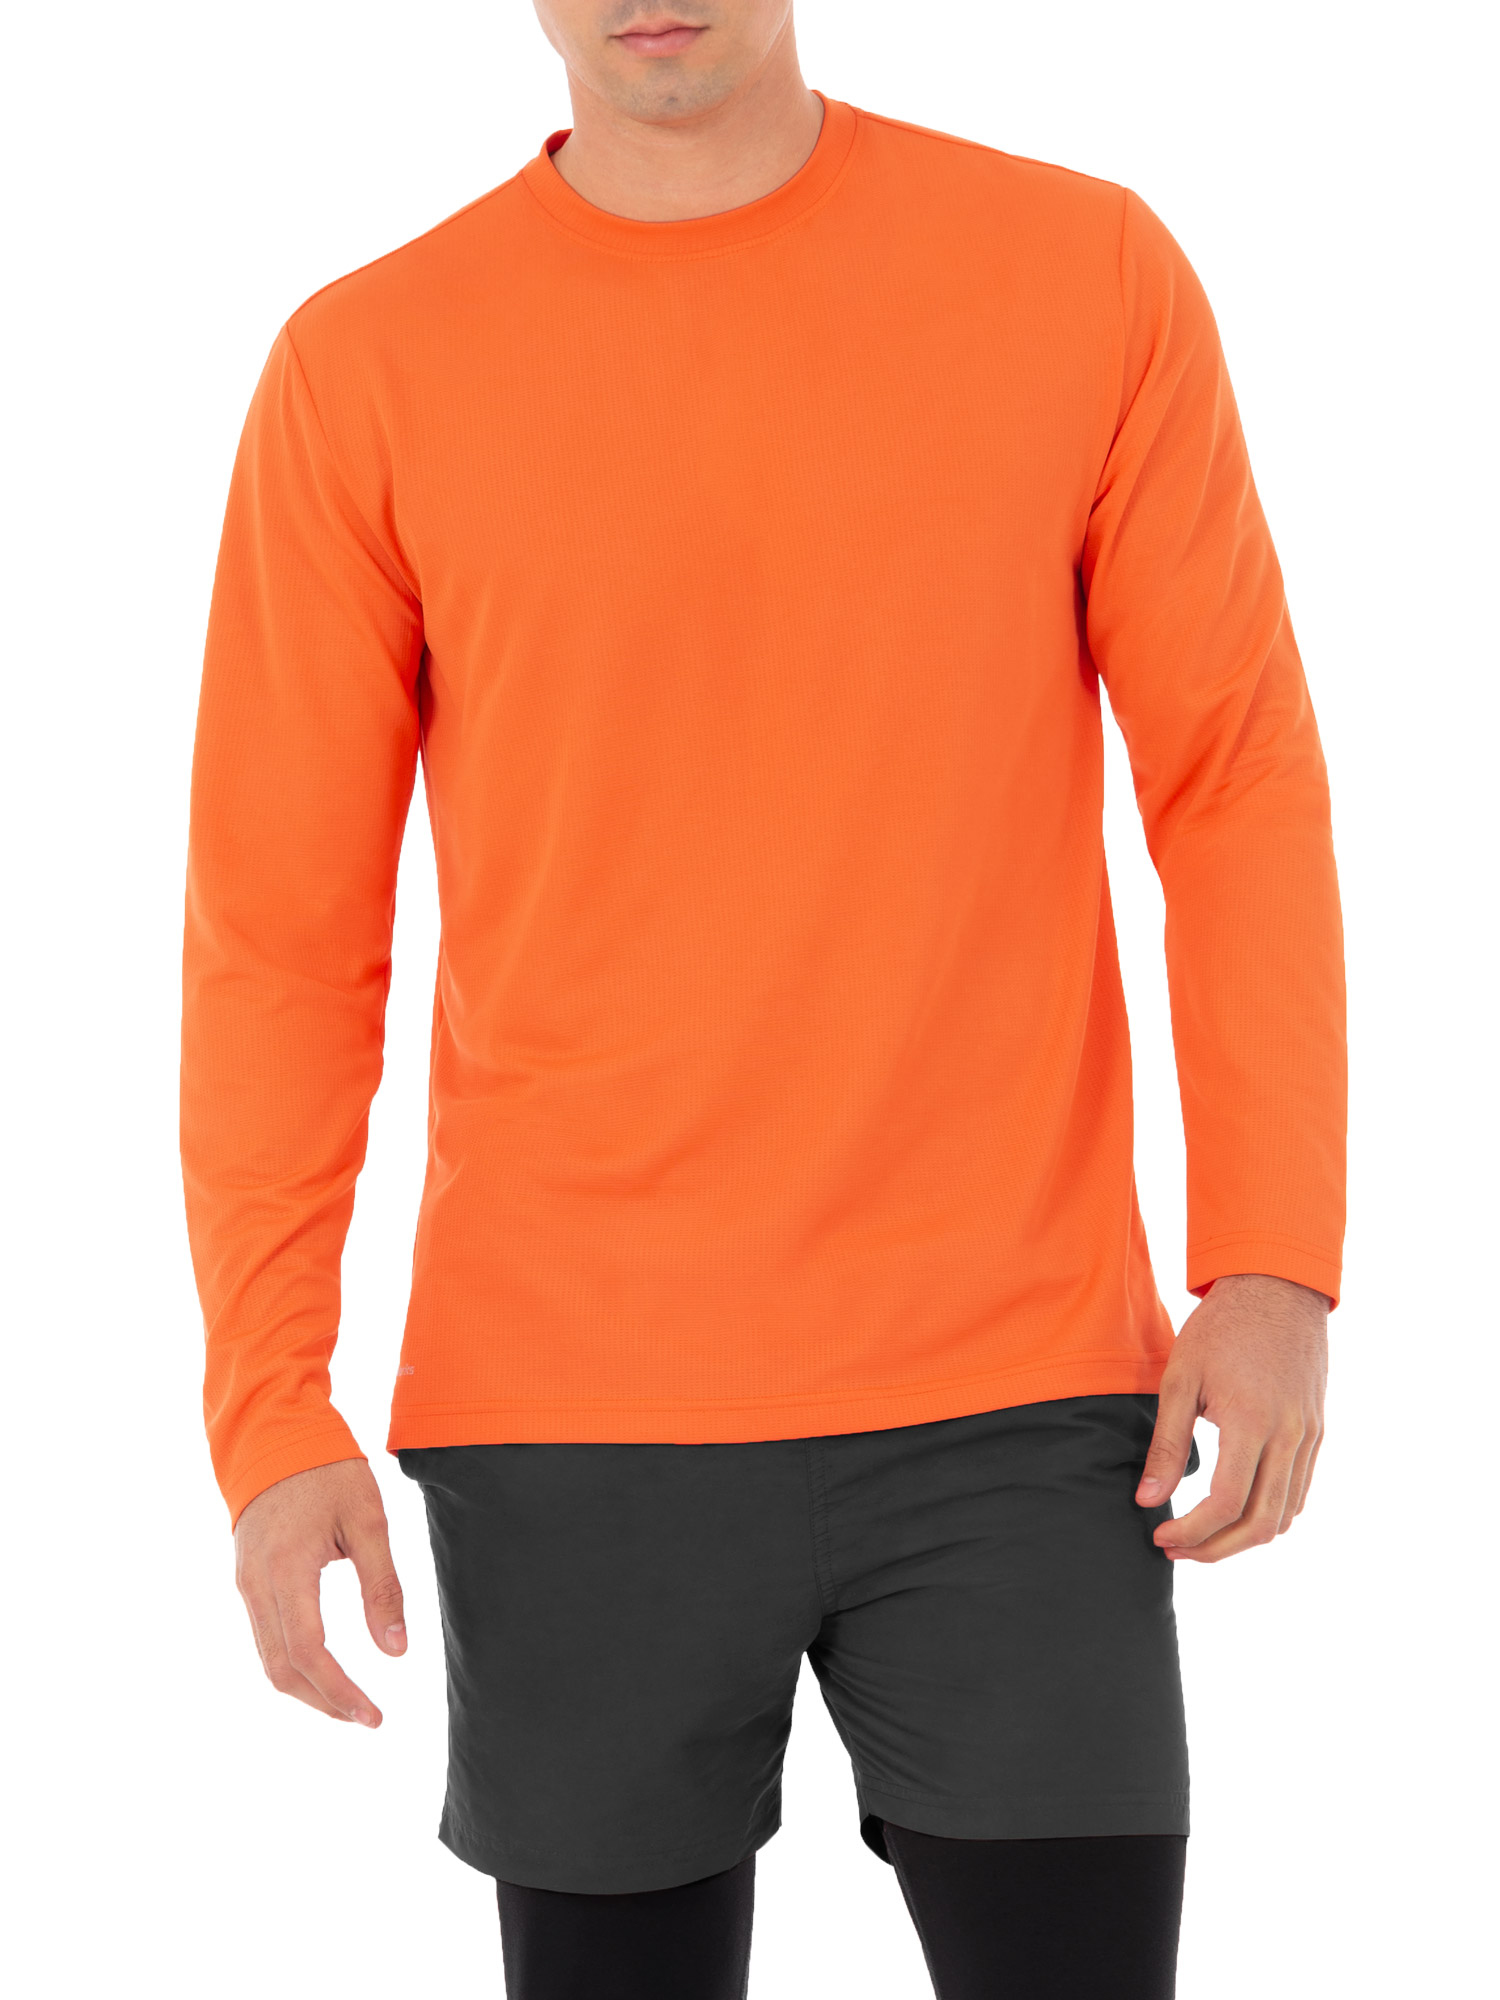 Athletic Works Men's Active Performance Long Sleeved Crew Neck Tee